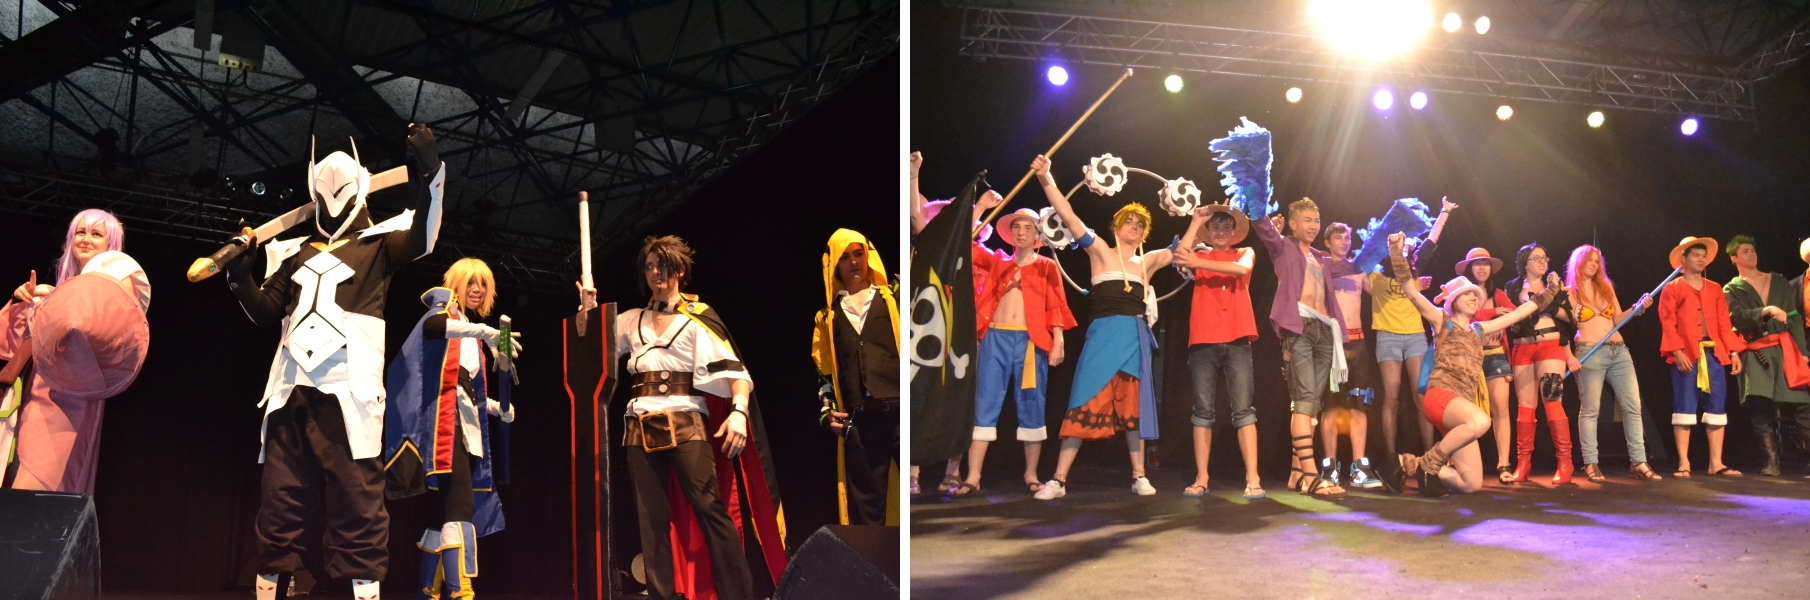 cosplay japan touch scene